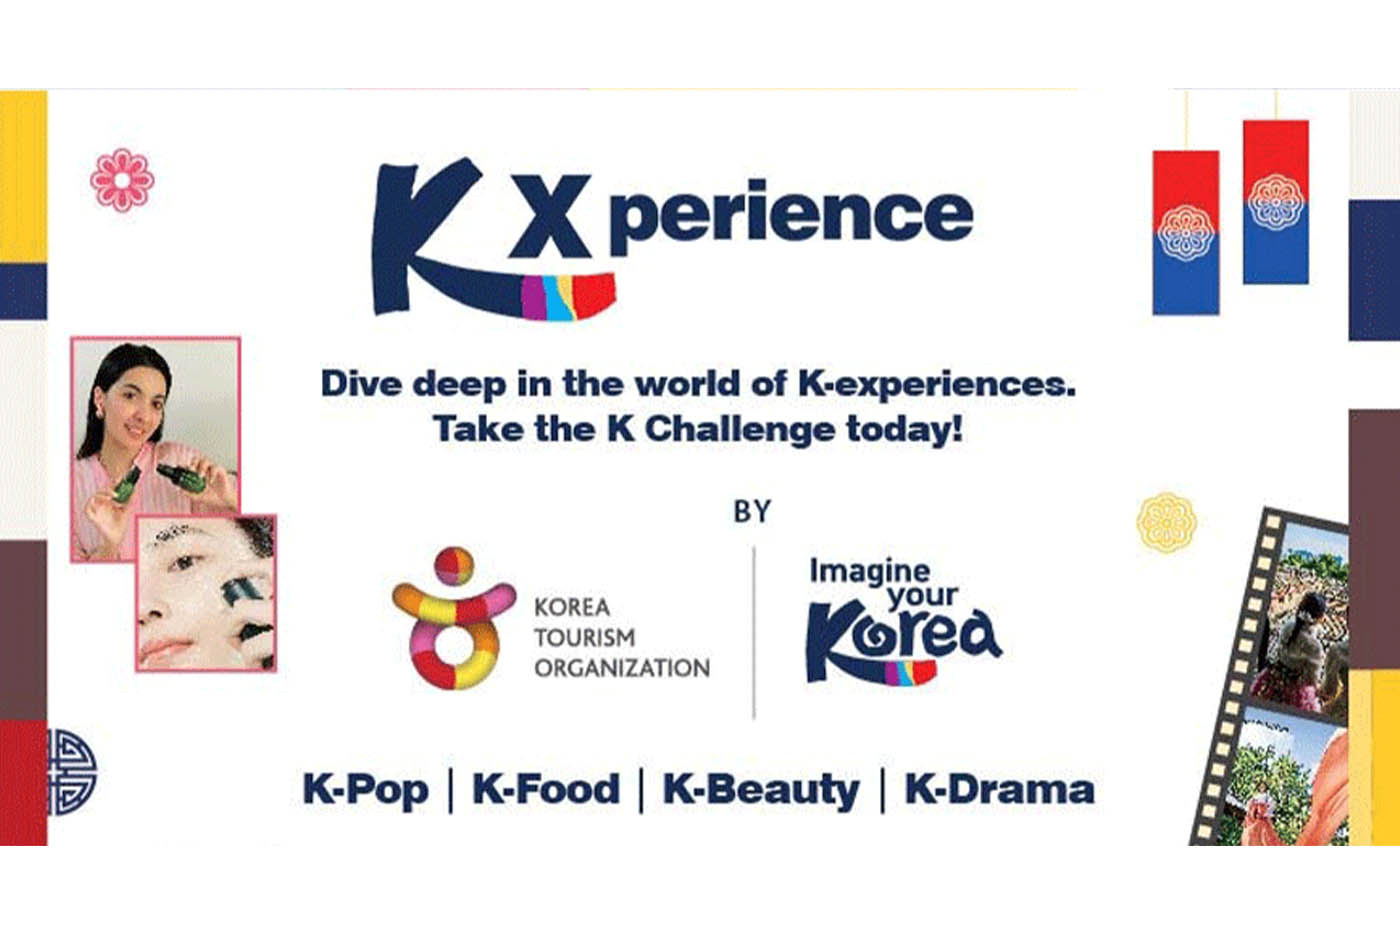 Korea Tourism organizes online event KXperience for Indian audience